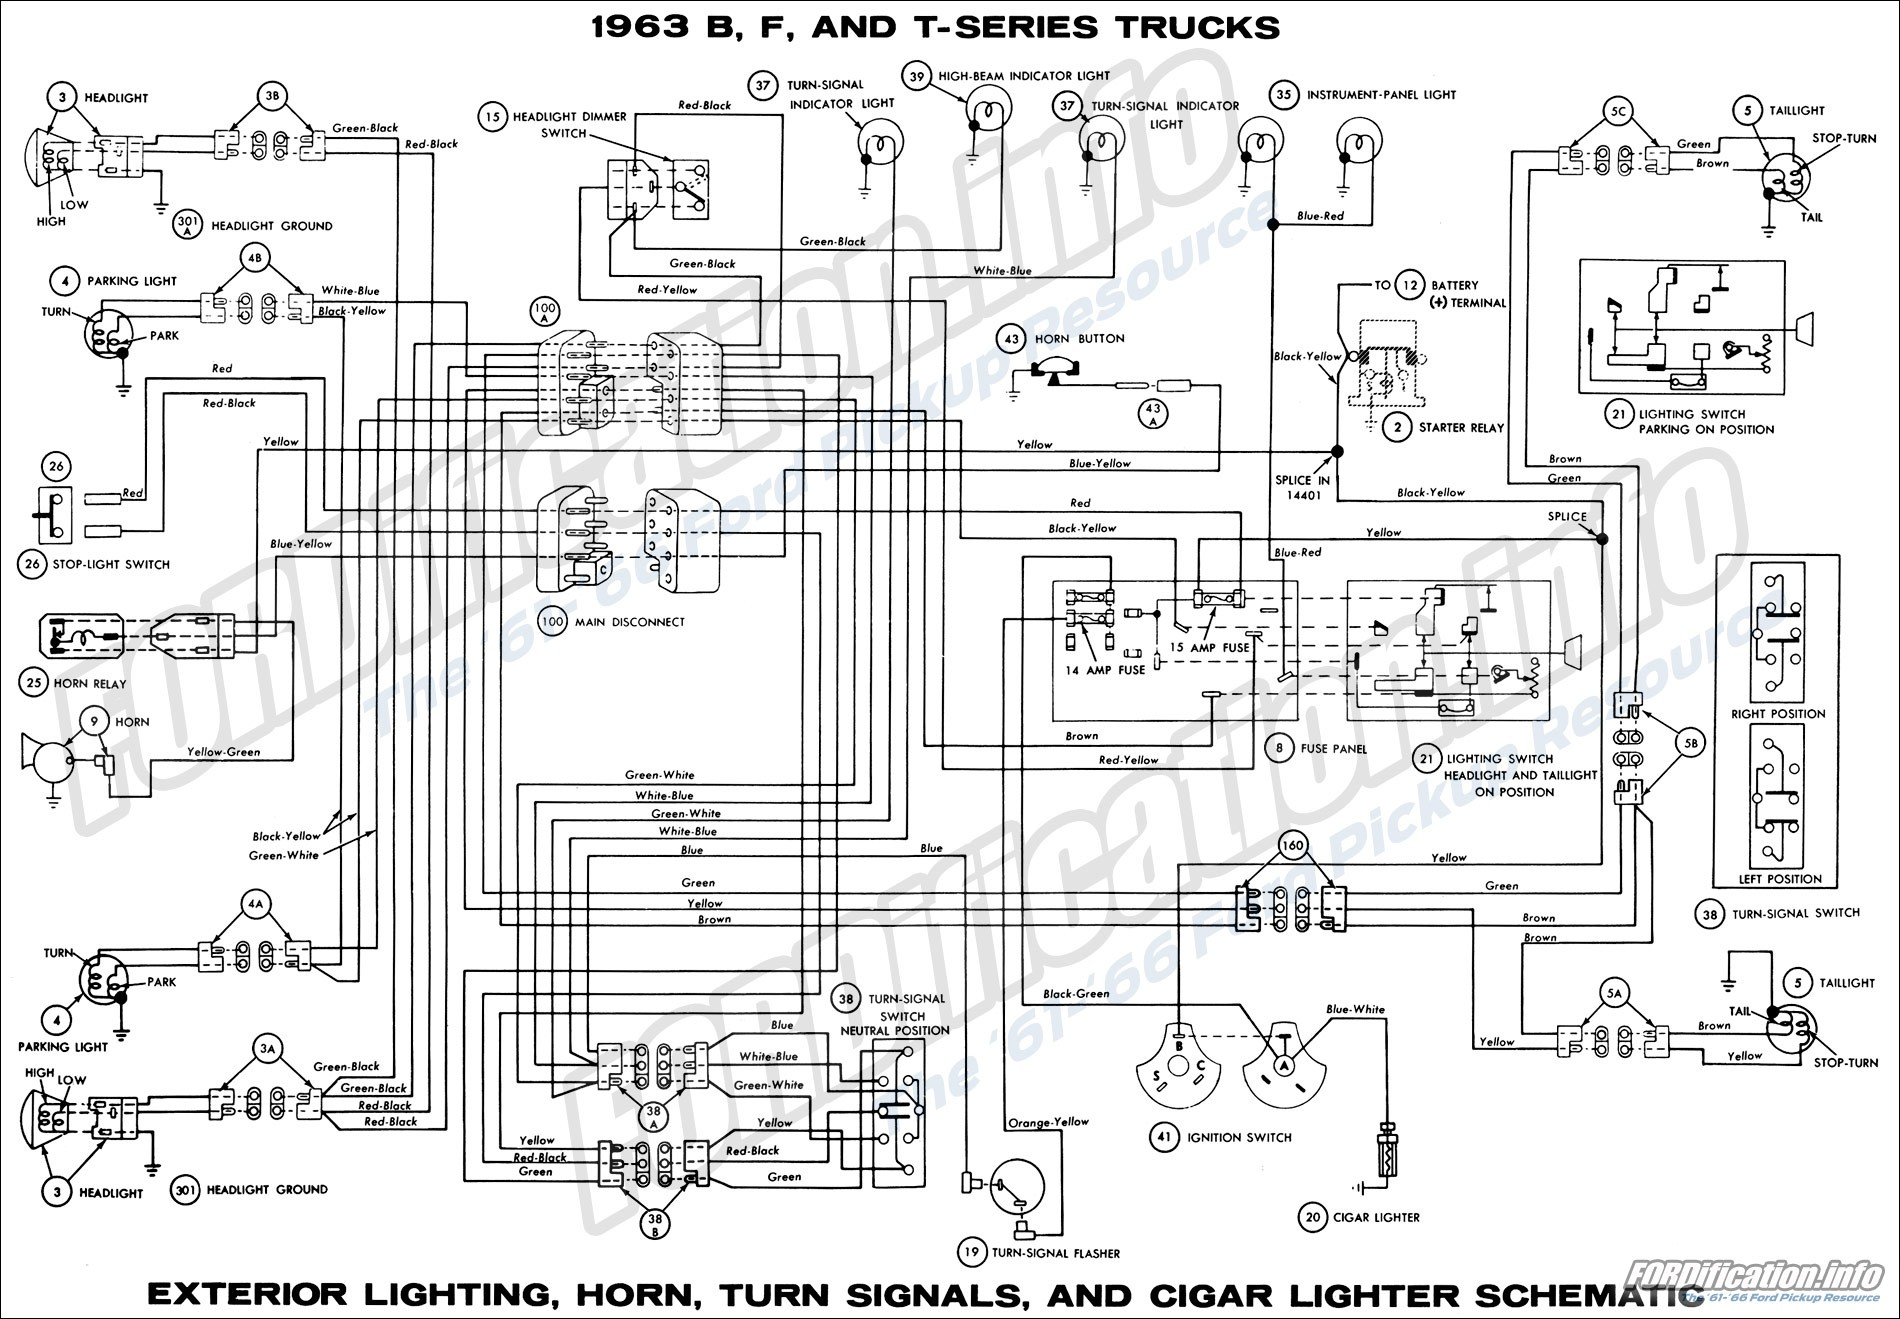 Car Cigarette Lighter Wiring Diagram Plug 12v 1963 Ford Truck Diagrams Fordificationfo The 61 66 Of